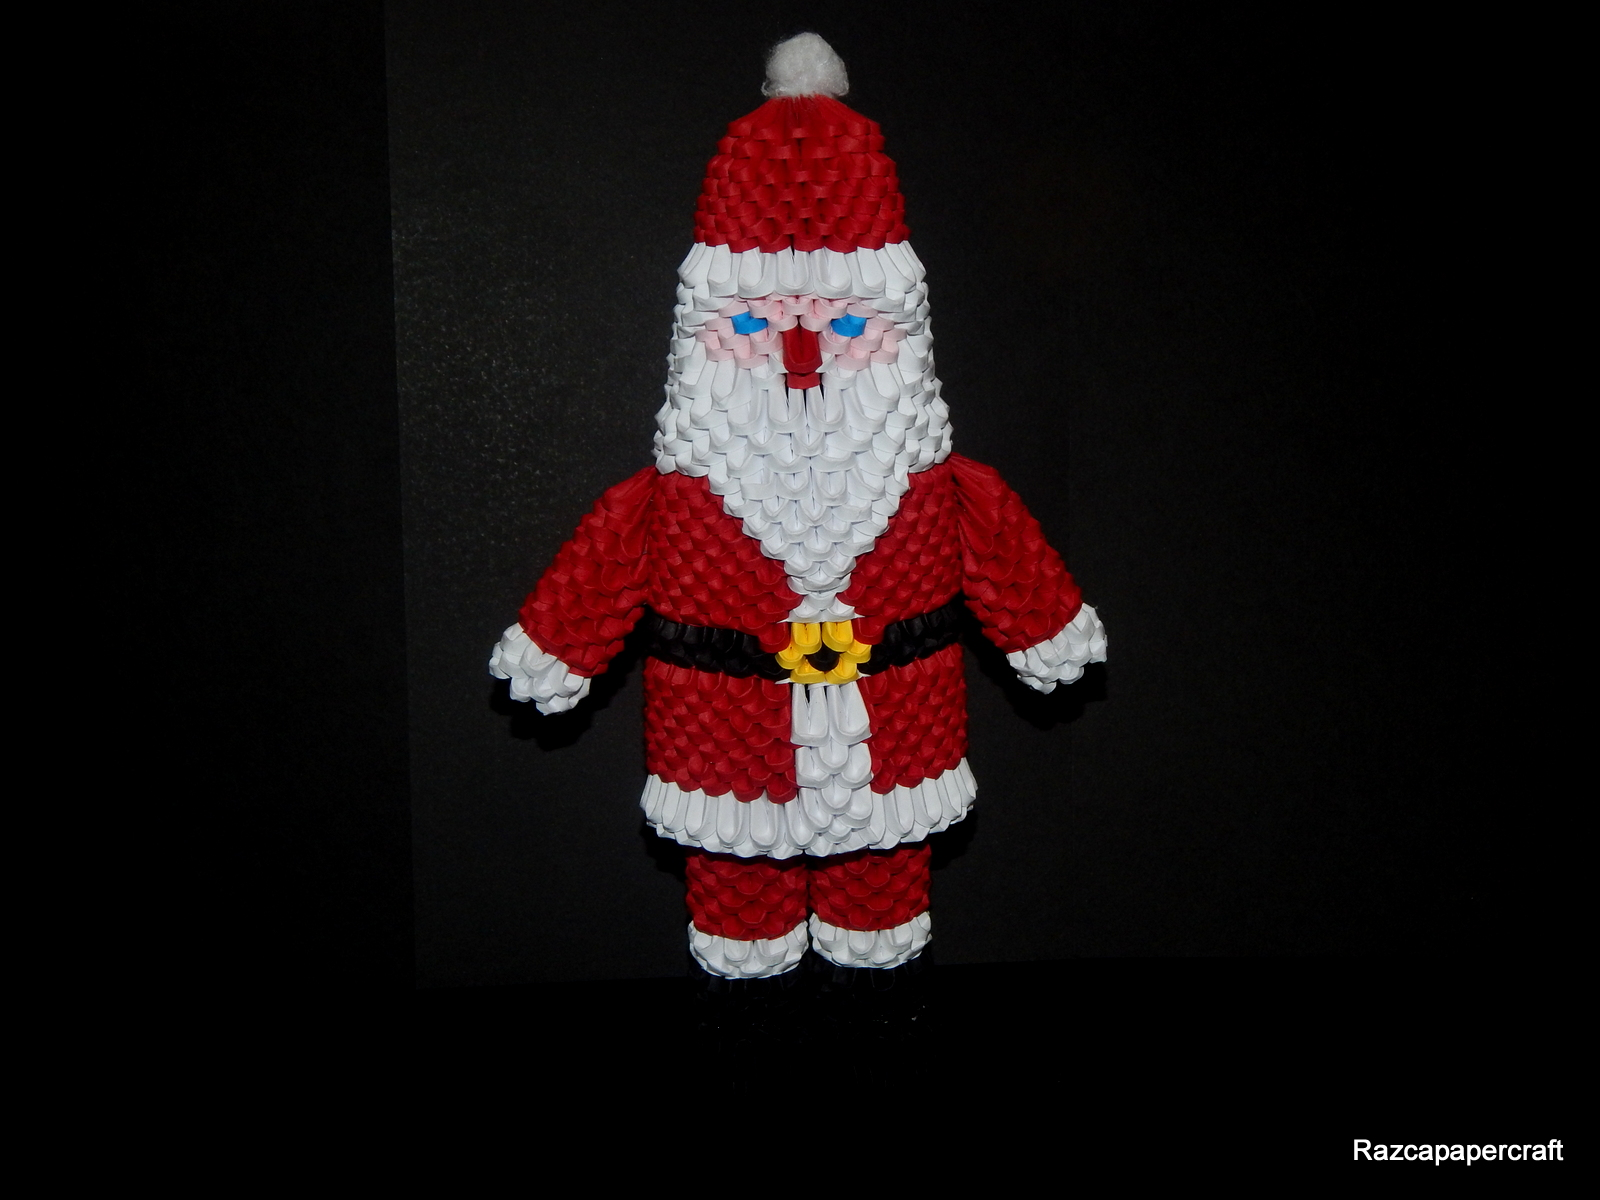 Razcapapercraft: 3D Origami Santa Claus tutorial 2015 - photo#23